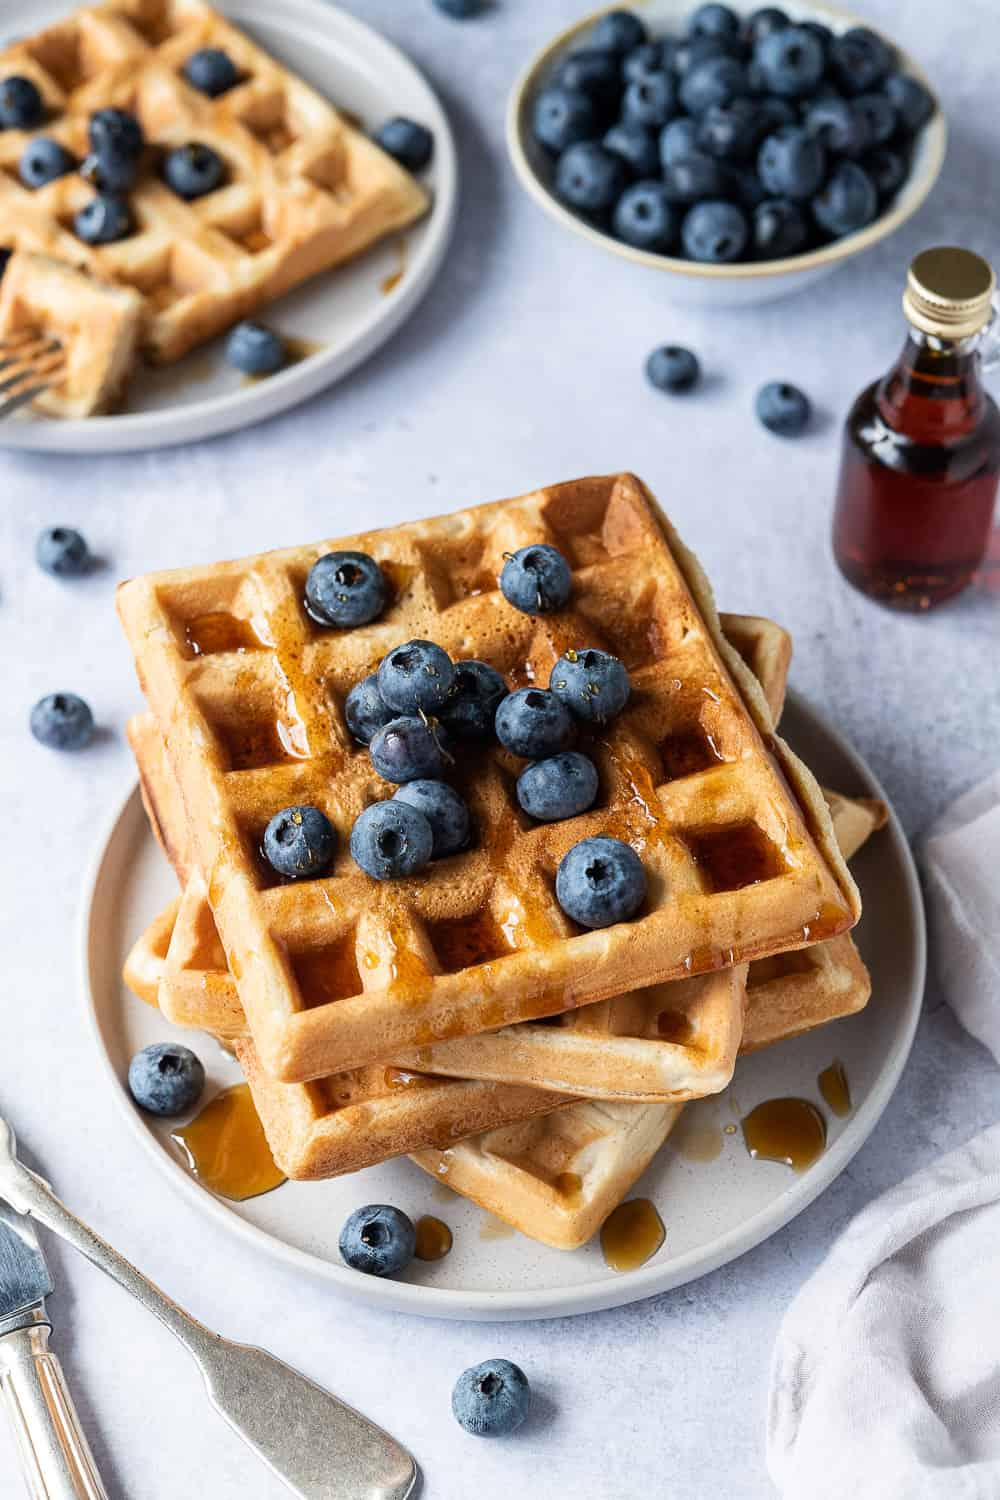 A stack of vegan waffles on a grey plate topped with blueberries and maple syrup